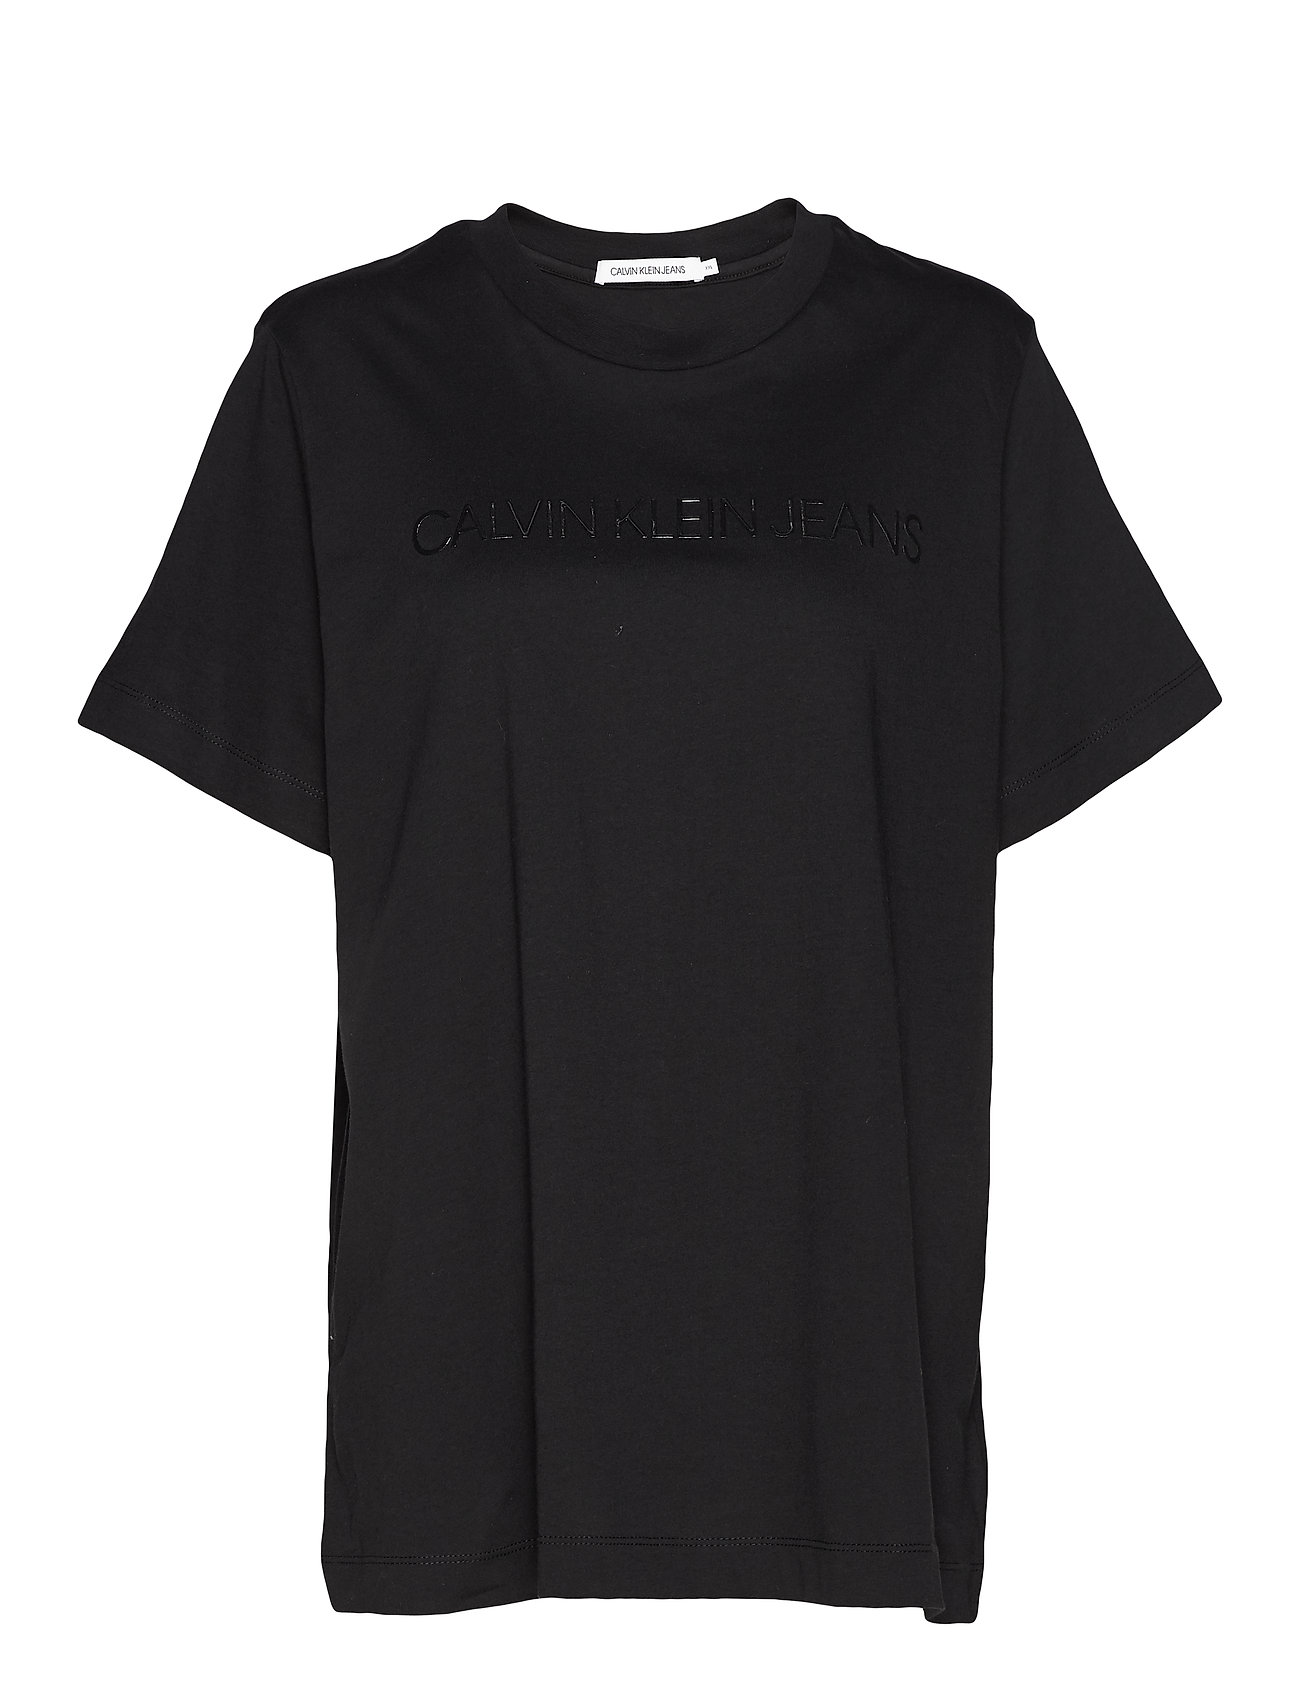 Calvin Klein Jeans PLUS INSTITUTIONAL LOGO TEE - CK BLACK